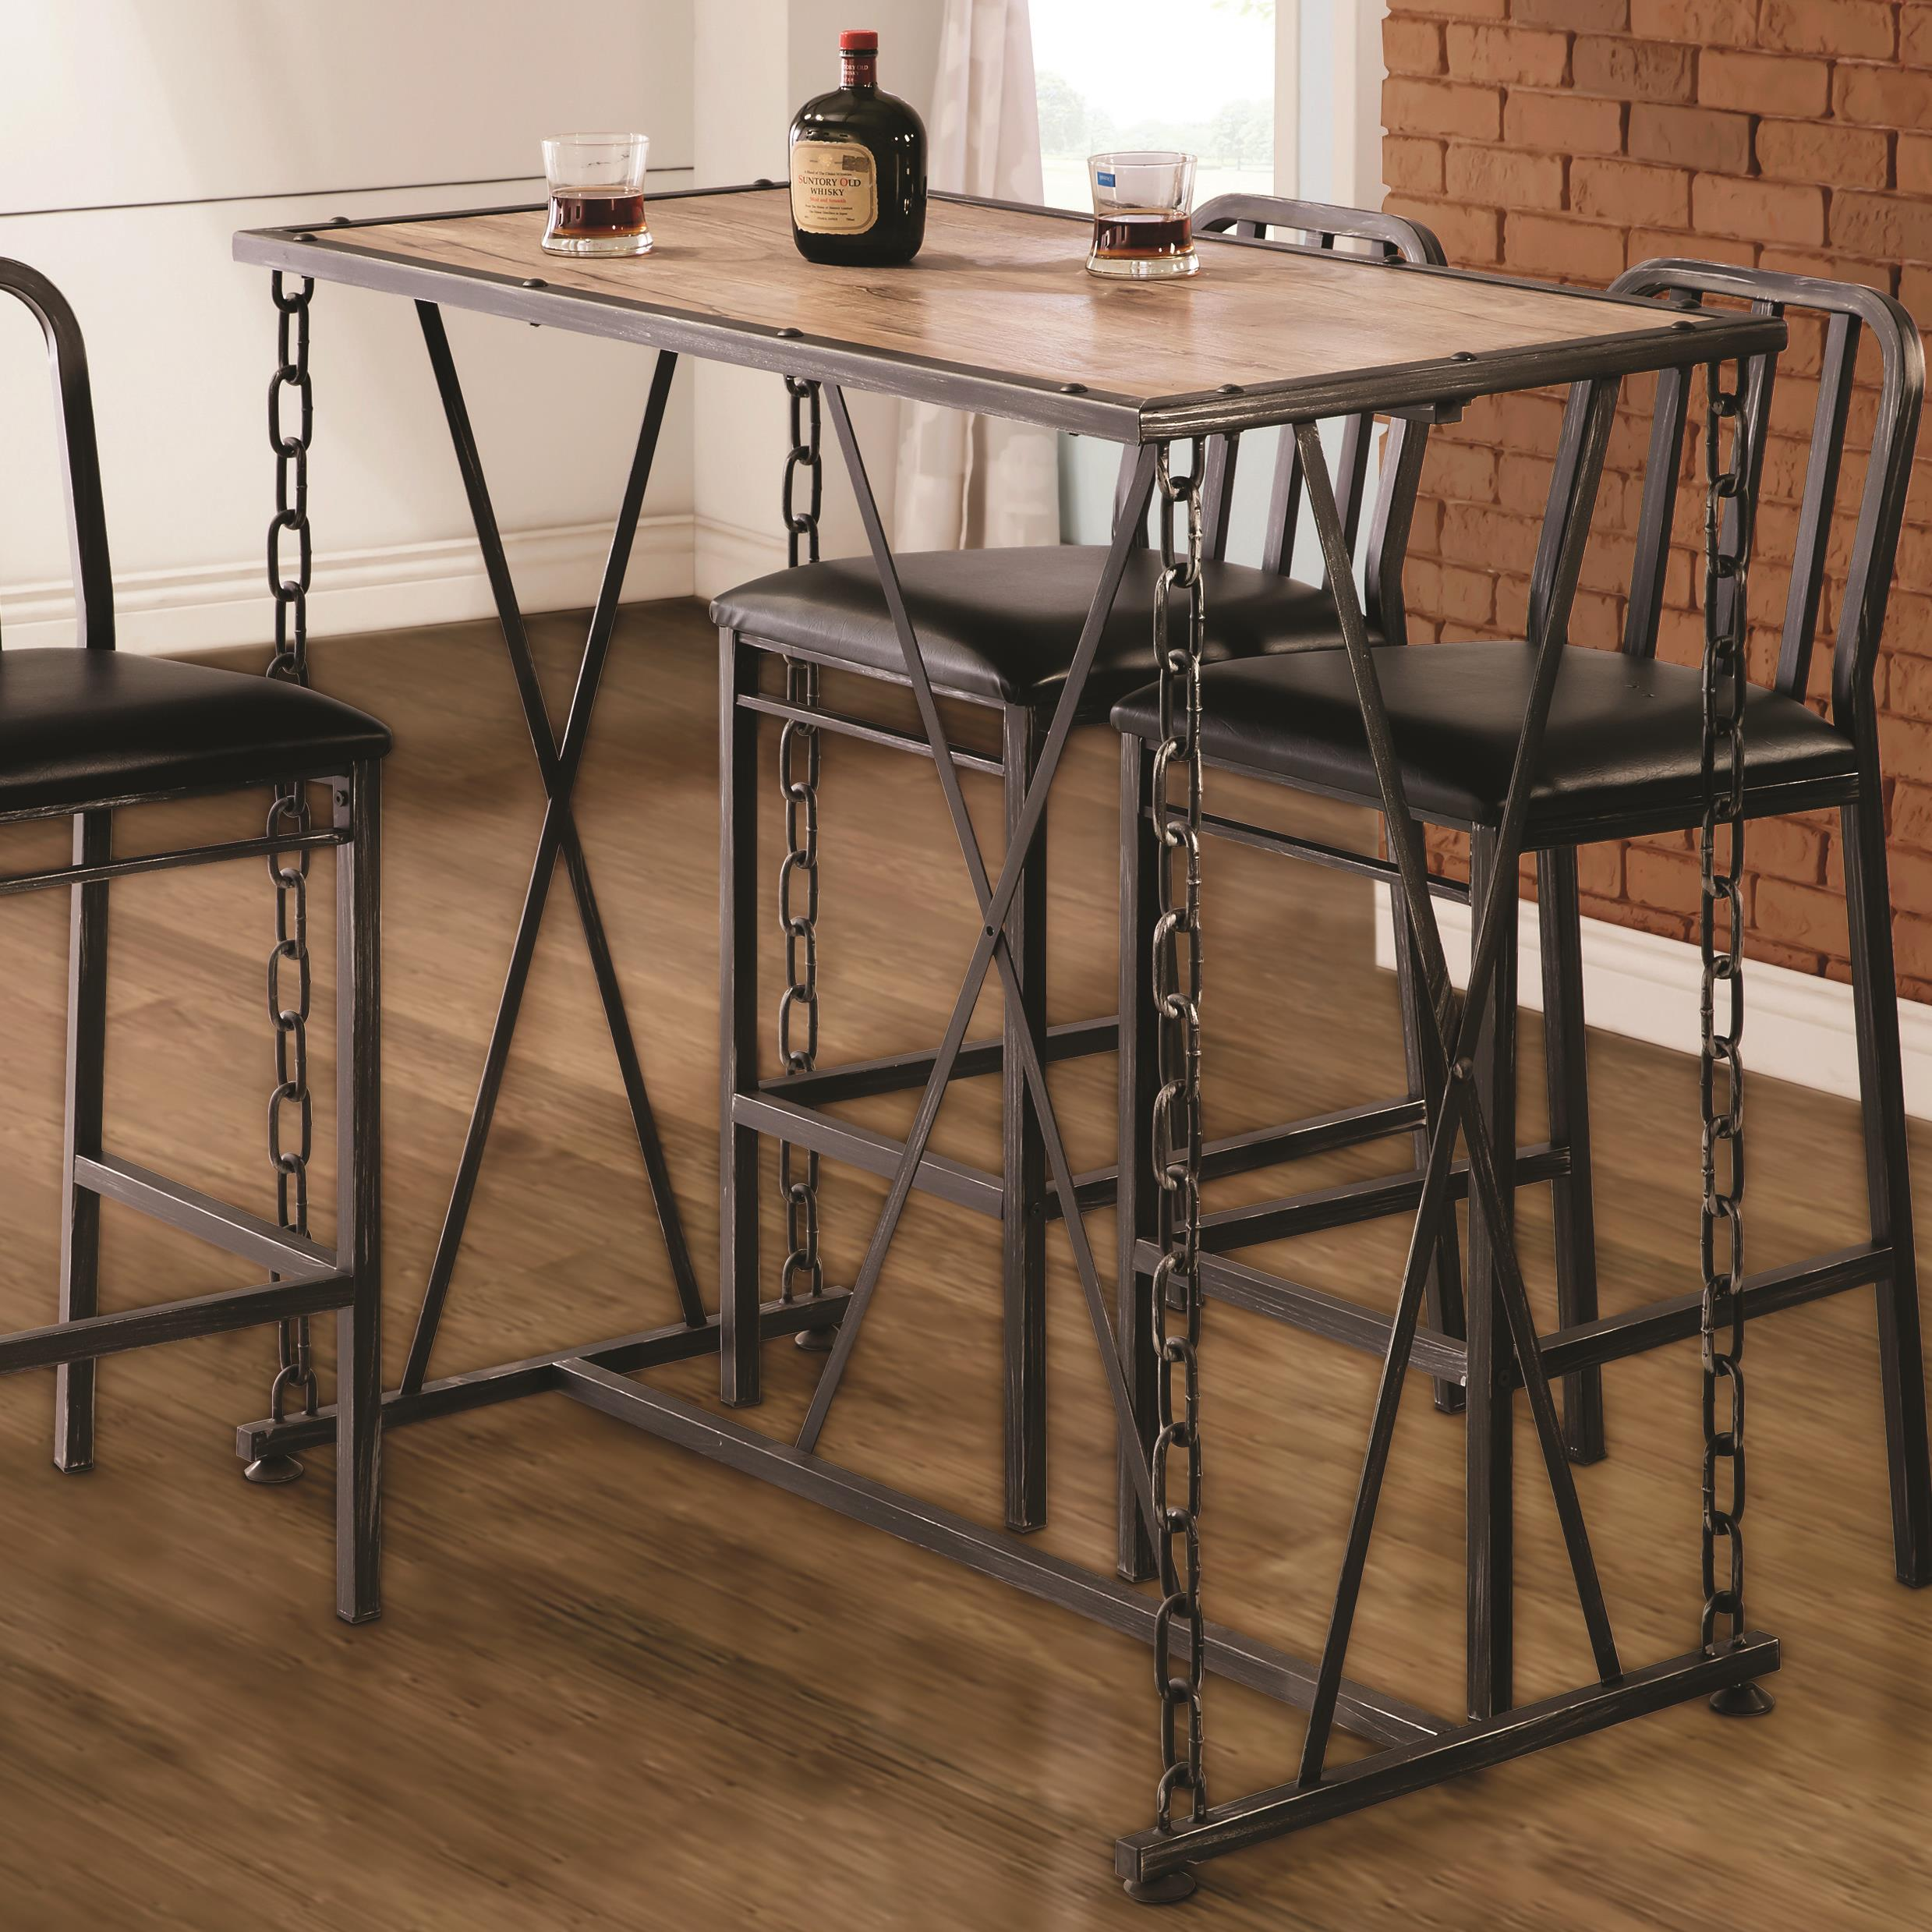 Table Bar Industriel 10069 Rustic Industrial Chain Link Bar Table Quality